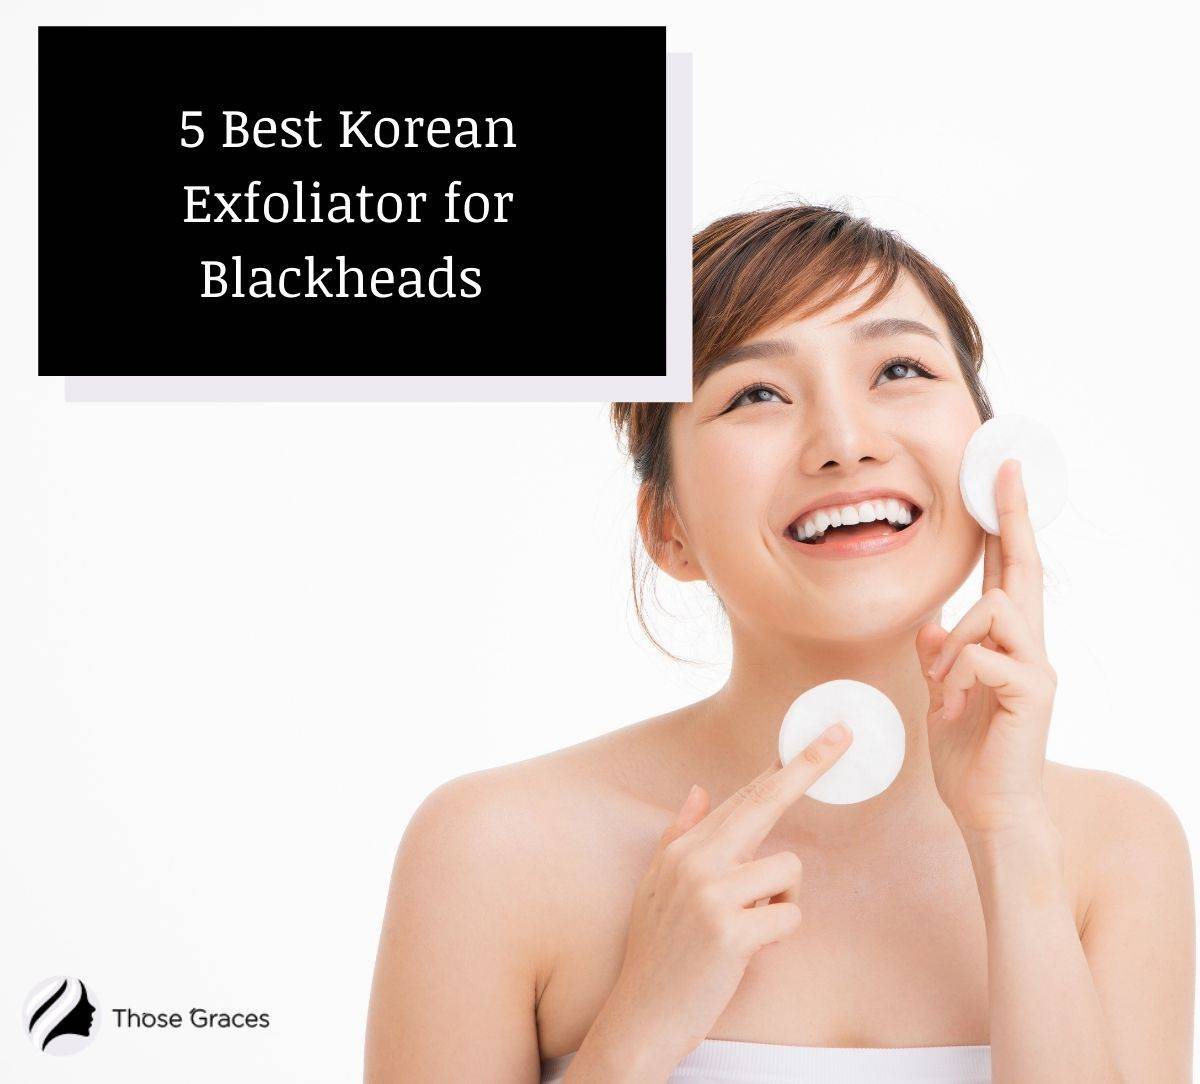 Korean lady smiling while using the best korean exfoliator for blackheads on her face